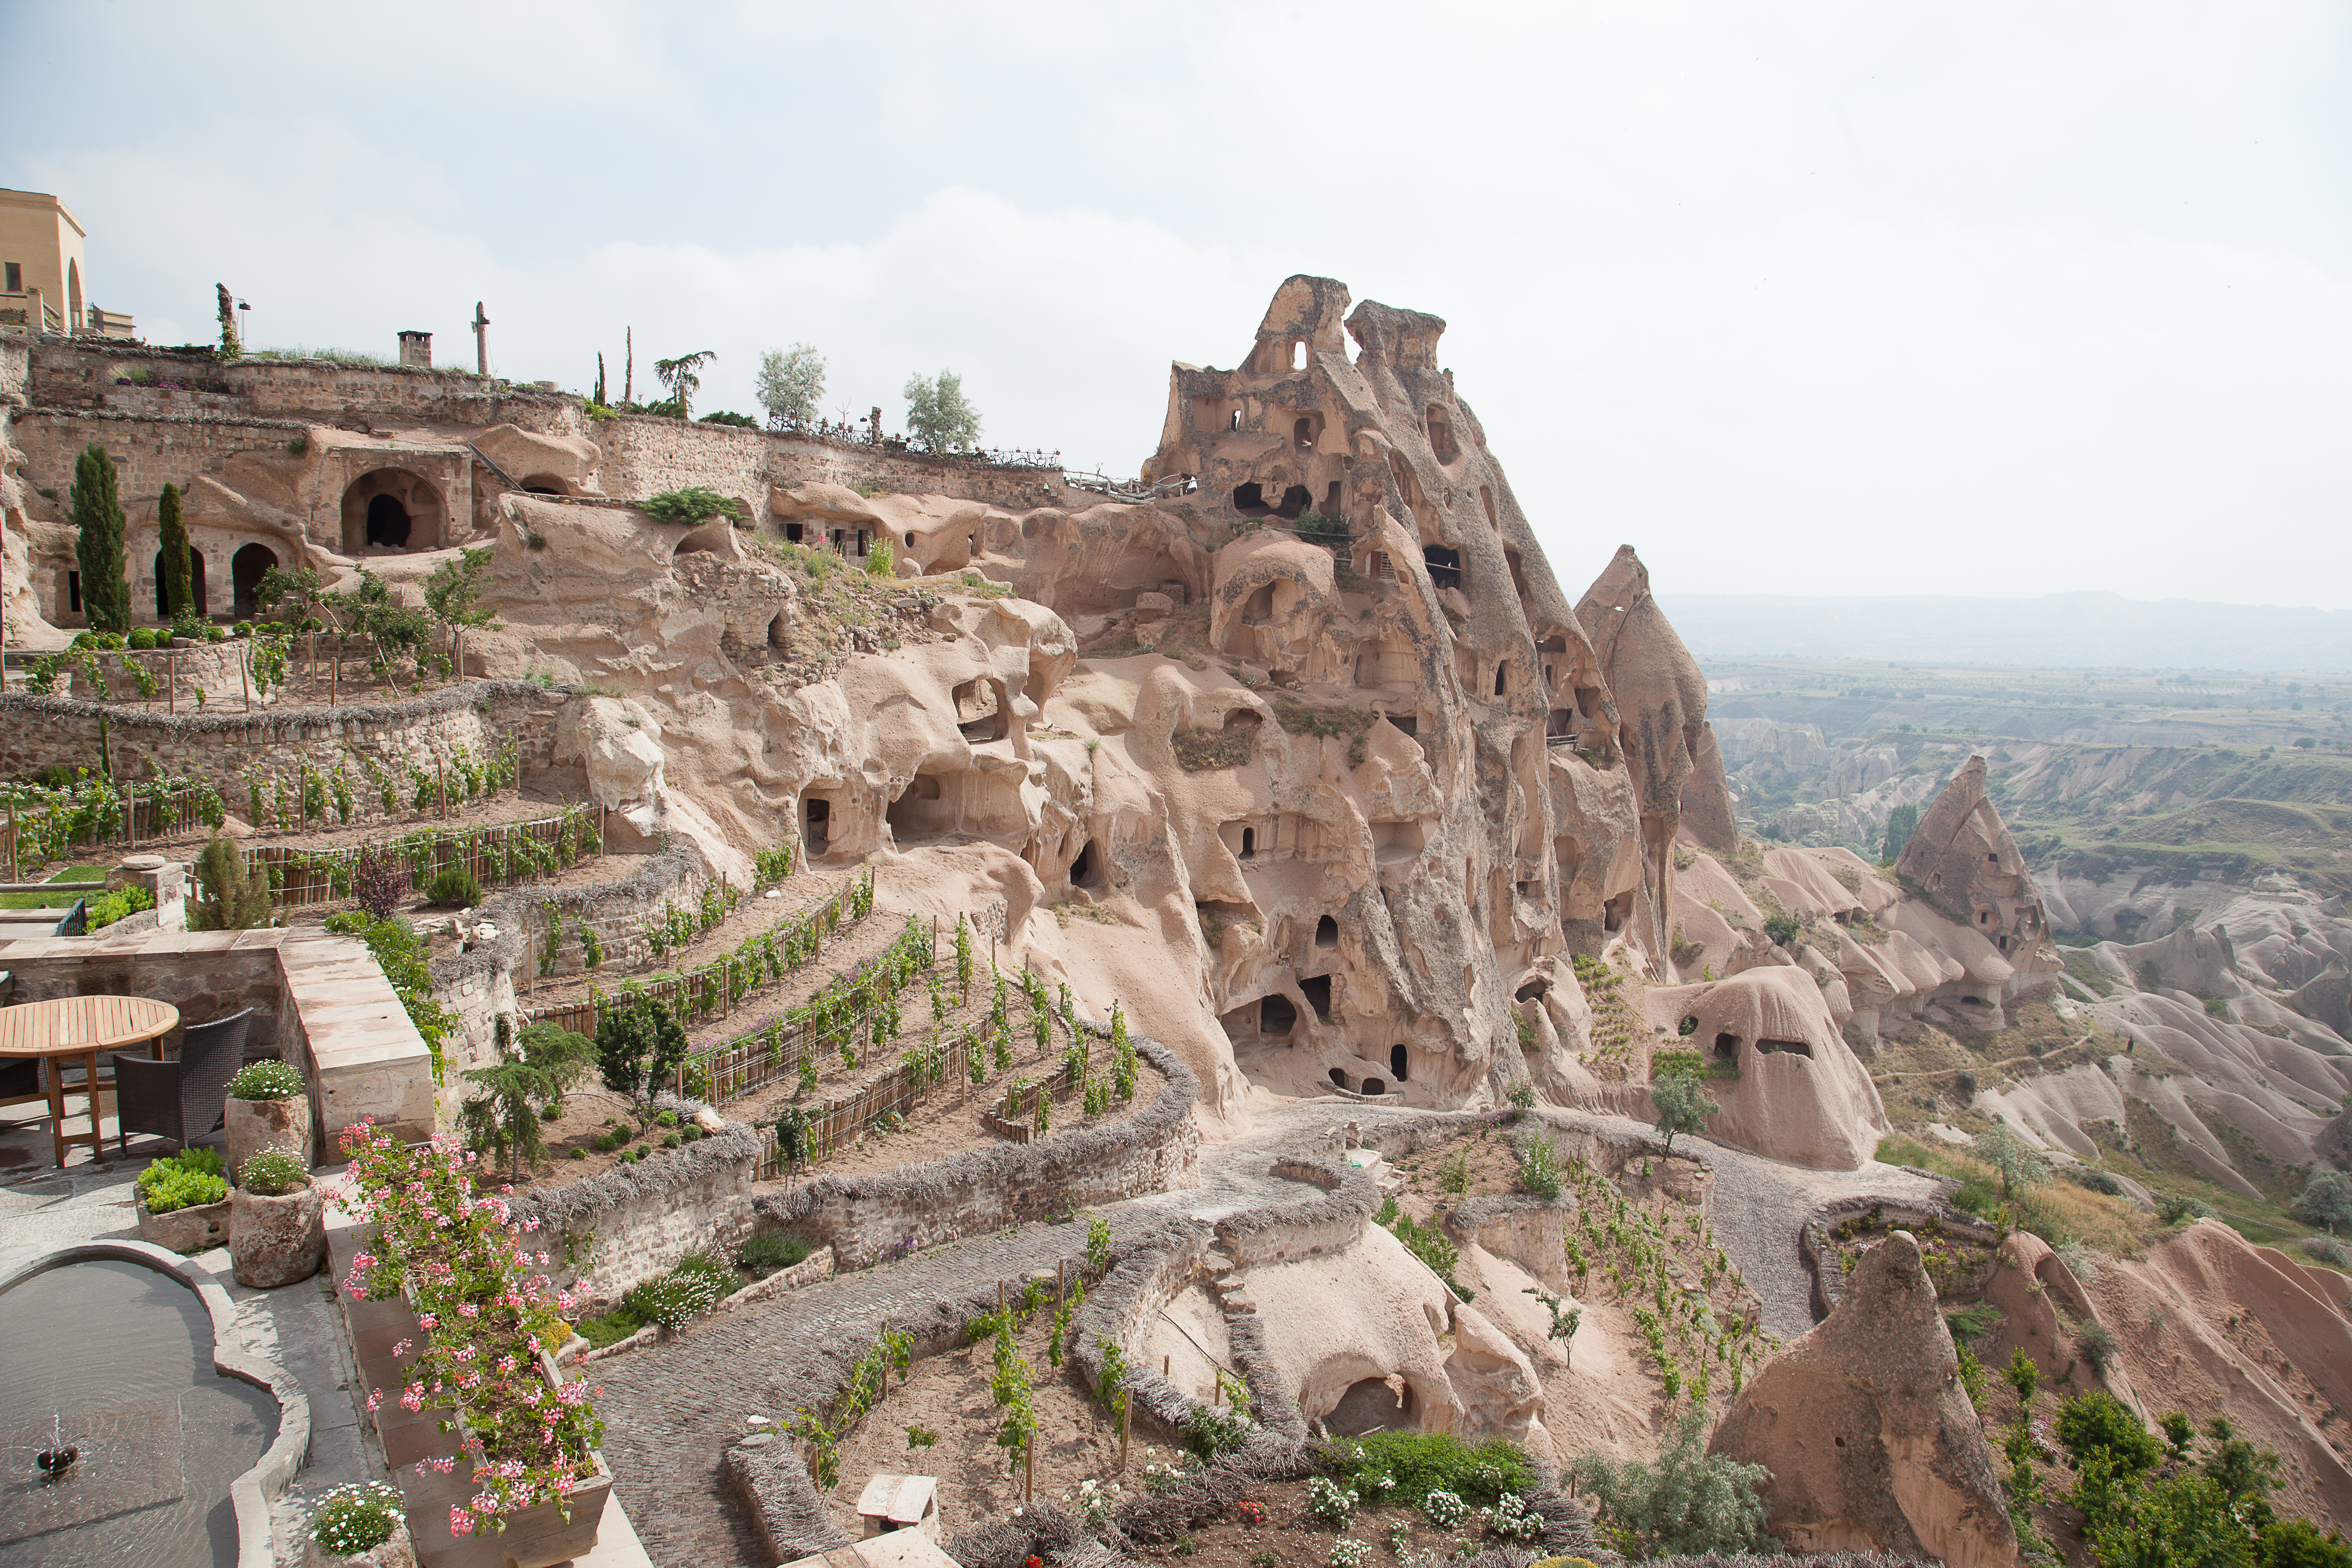 Paradise on Earth: Welcome to Cappadocia